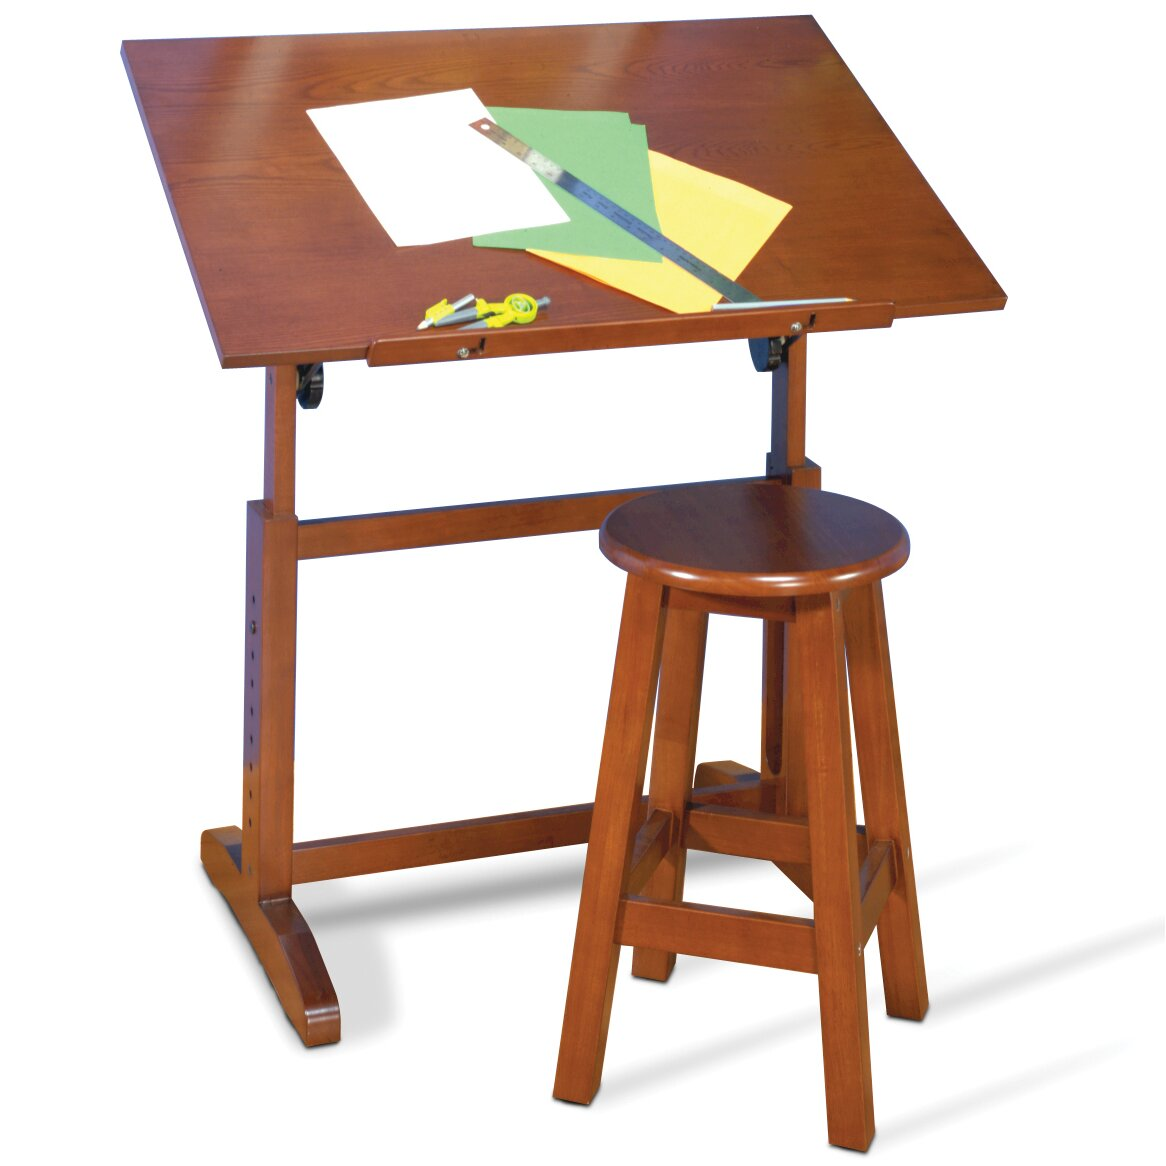 Studio Design Drafting Table zenith drafting table studio designs drafting table Creative Hardwood 36w X 24d Drafting Table And